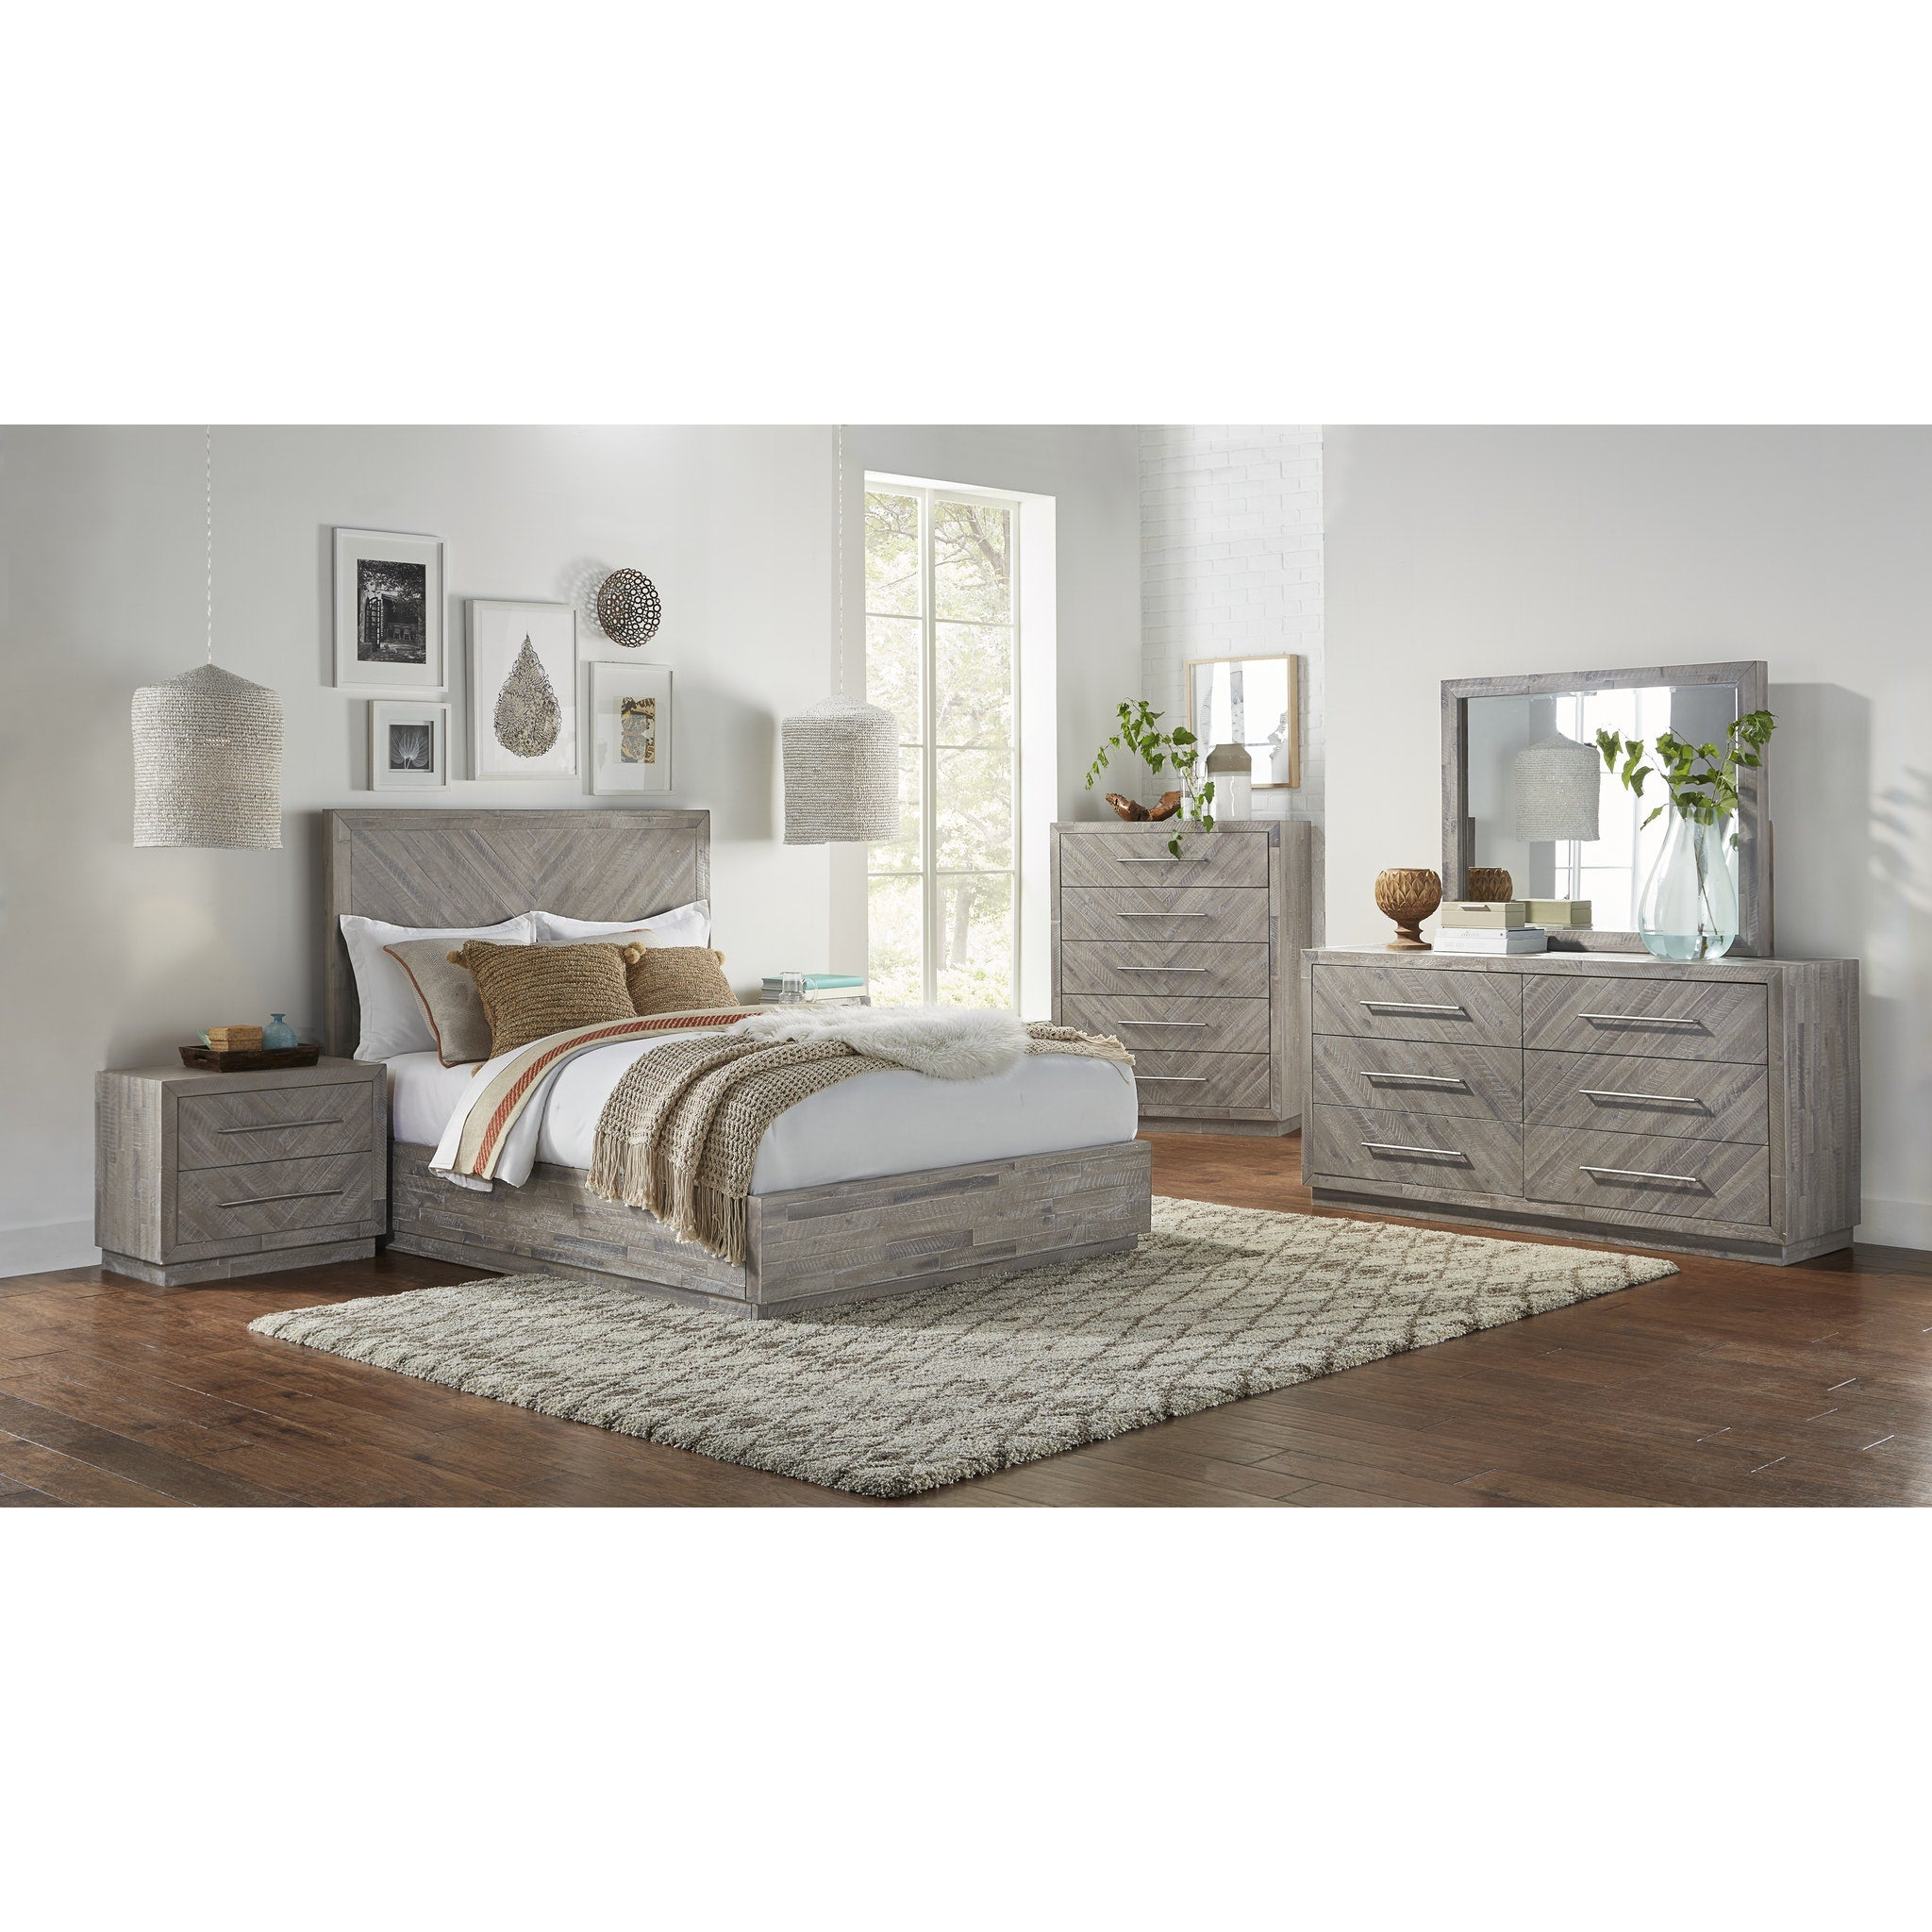 Alexandra Full-Size Solid Wood Storage Bed in Rustic Latte